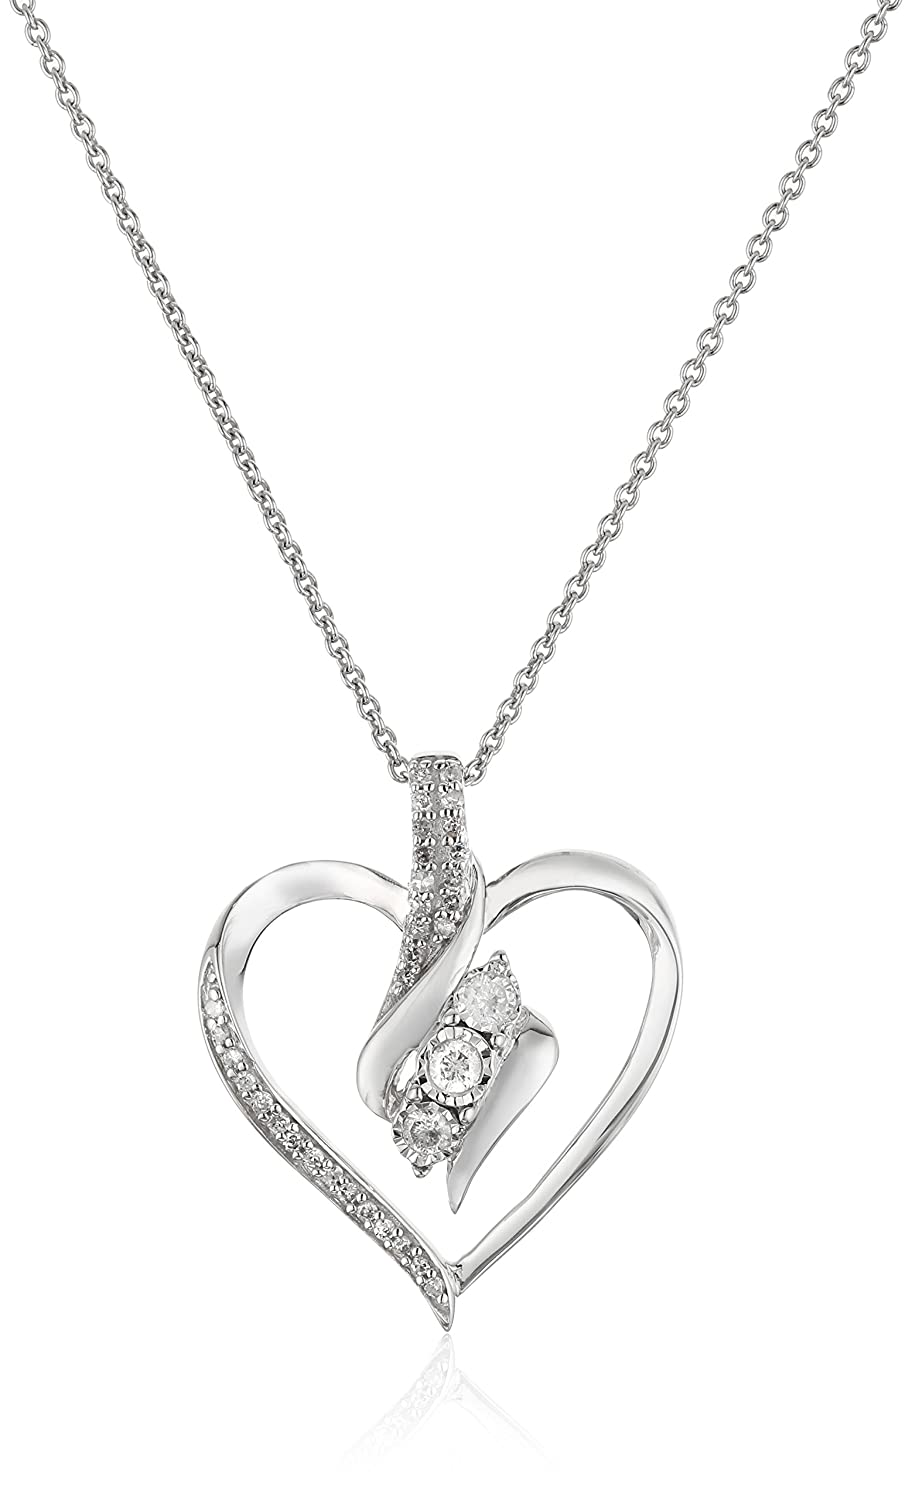 af41b6485ecfc Amazon.com  Sterling Silver Diamond 3 Stone Heart Pendant Necklace (1 4  cttw)